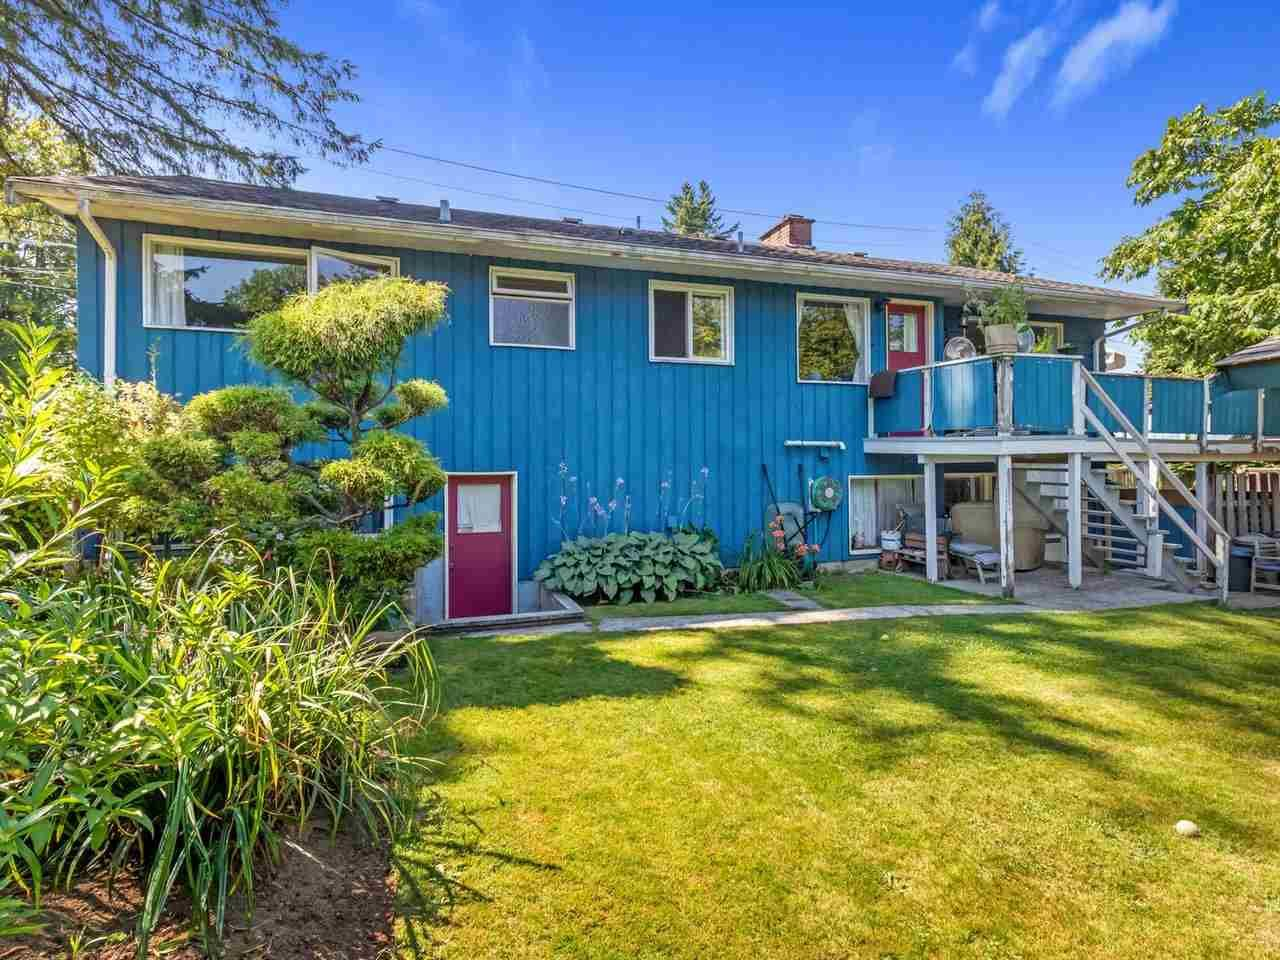 Photo 20: Photos: 943 GATENSBURY Street in Coquitlam: Harbour Chines House for sale : MLS®# R2499202